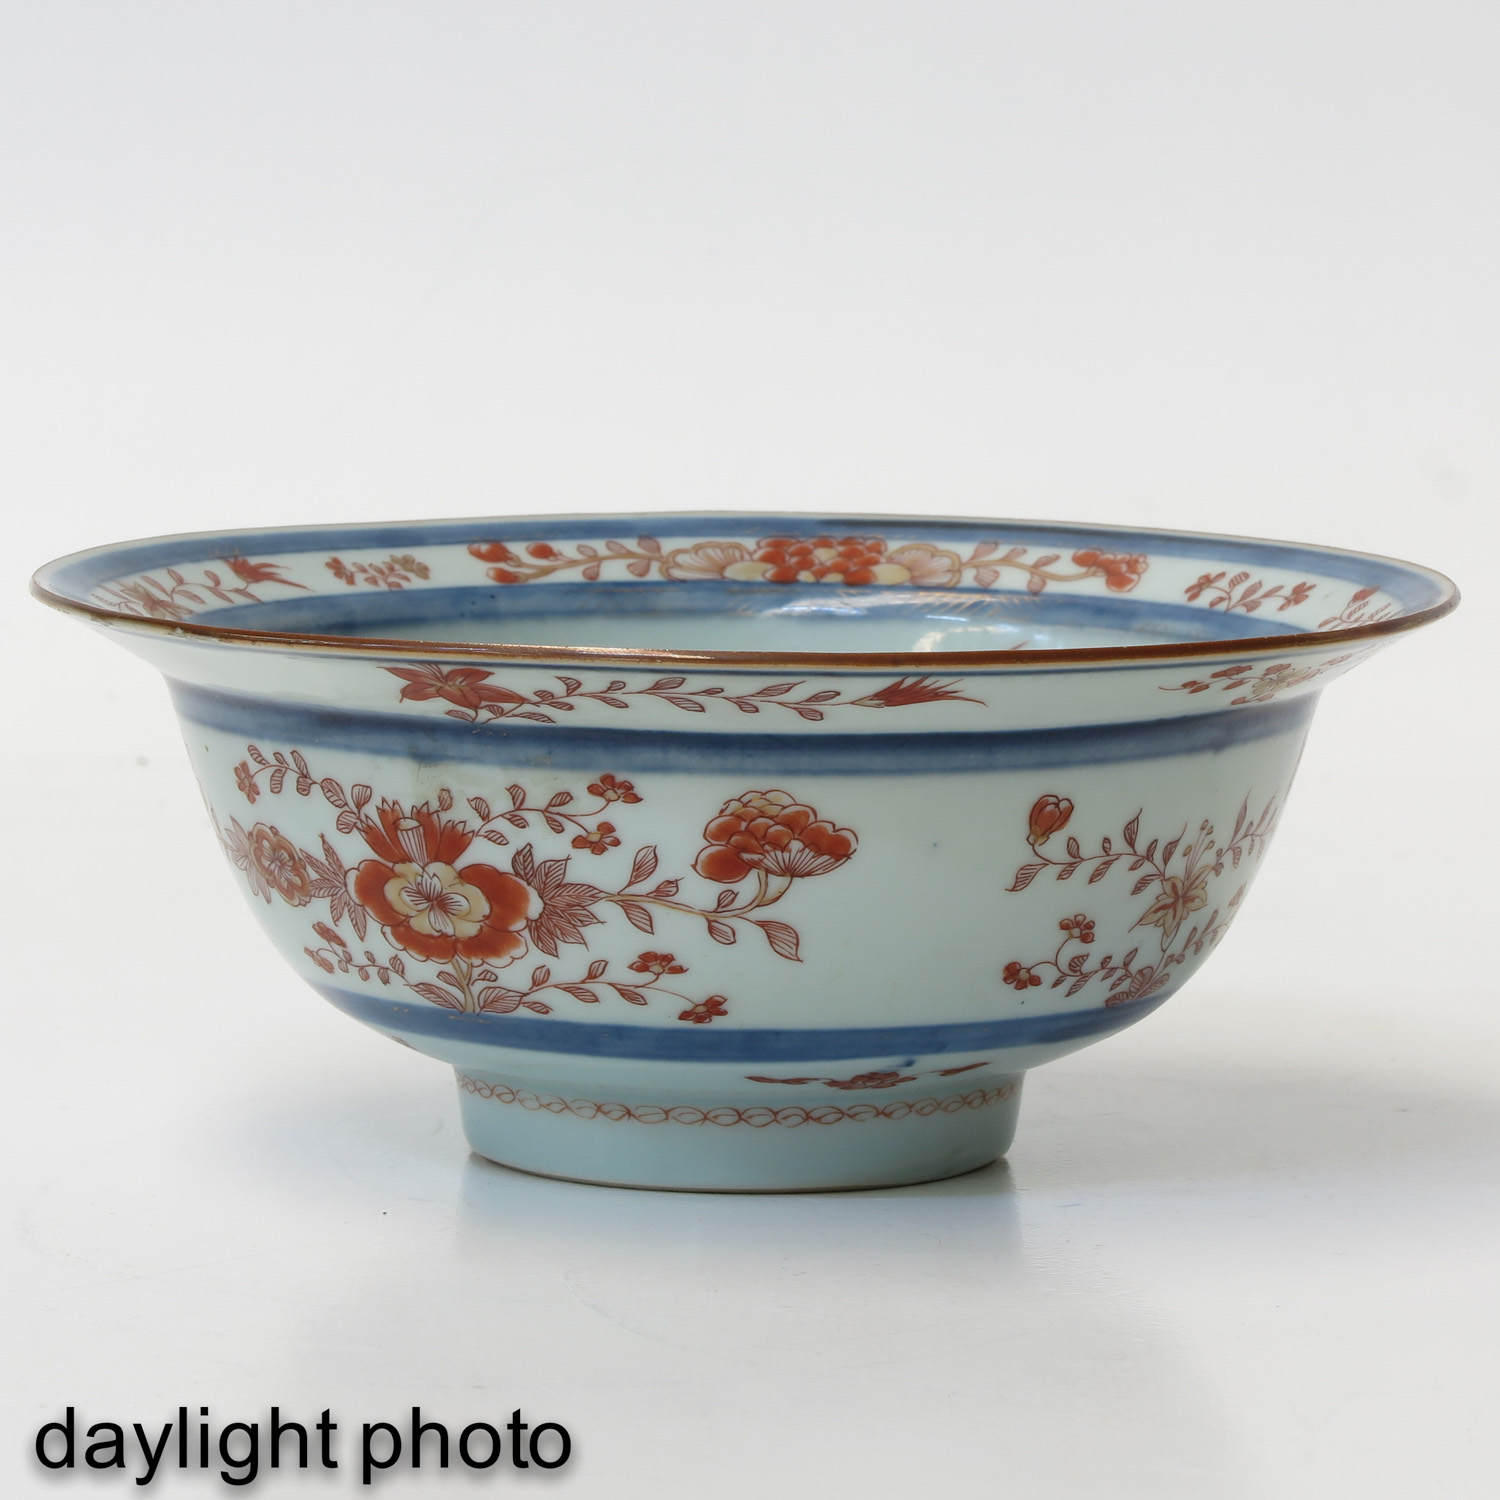 A Blue and Iron Red Bowl - Image 7 of 9